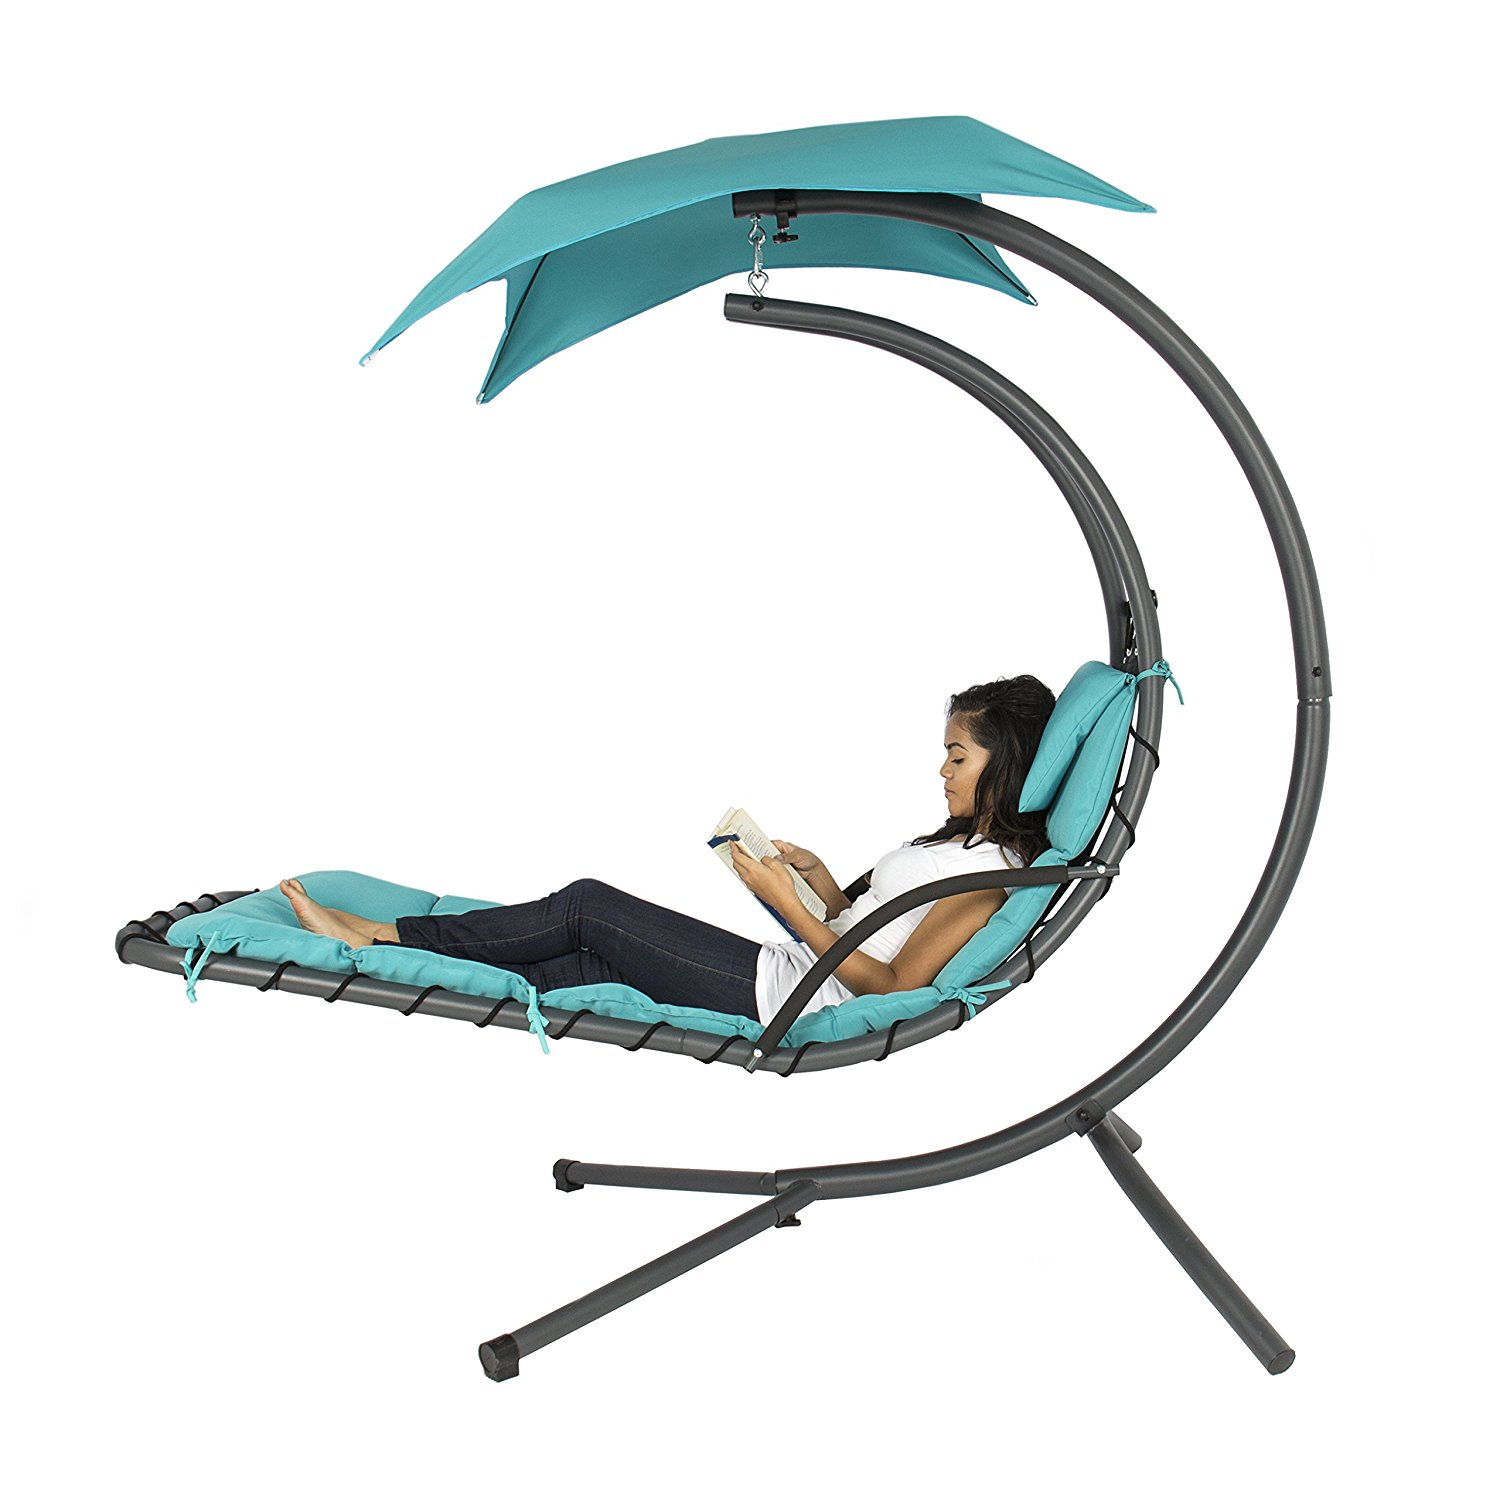 Hanging Chaice Lounger Chair with Arch Stand and Conopy review